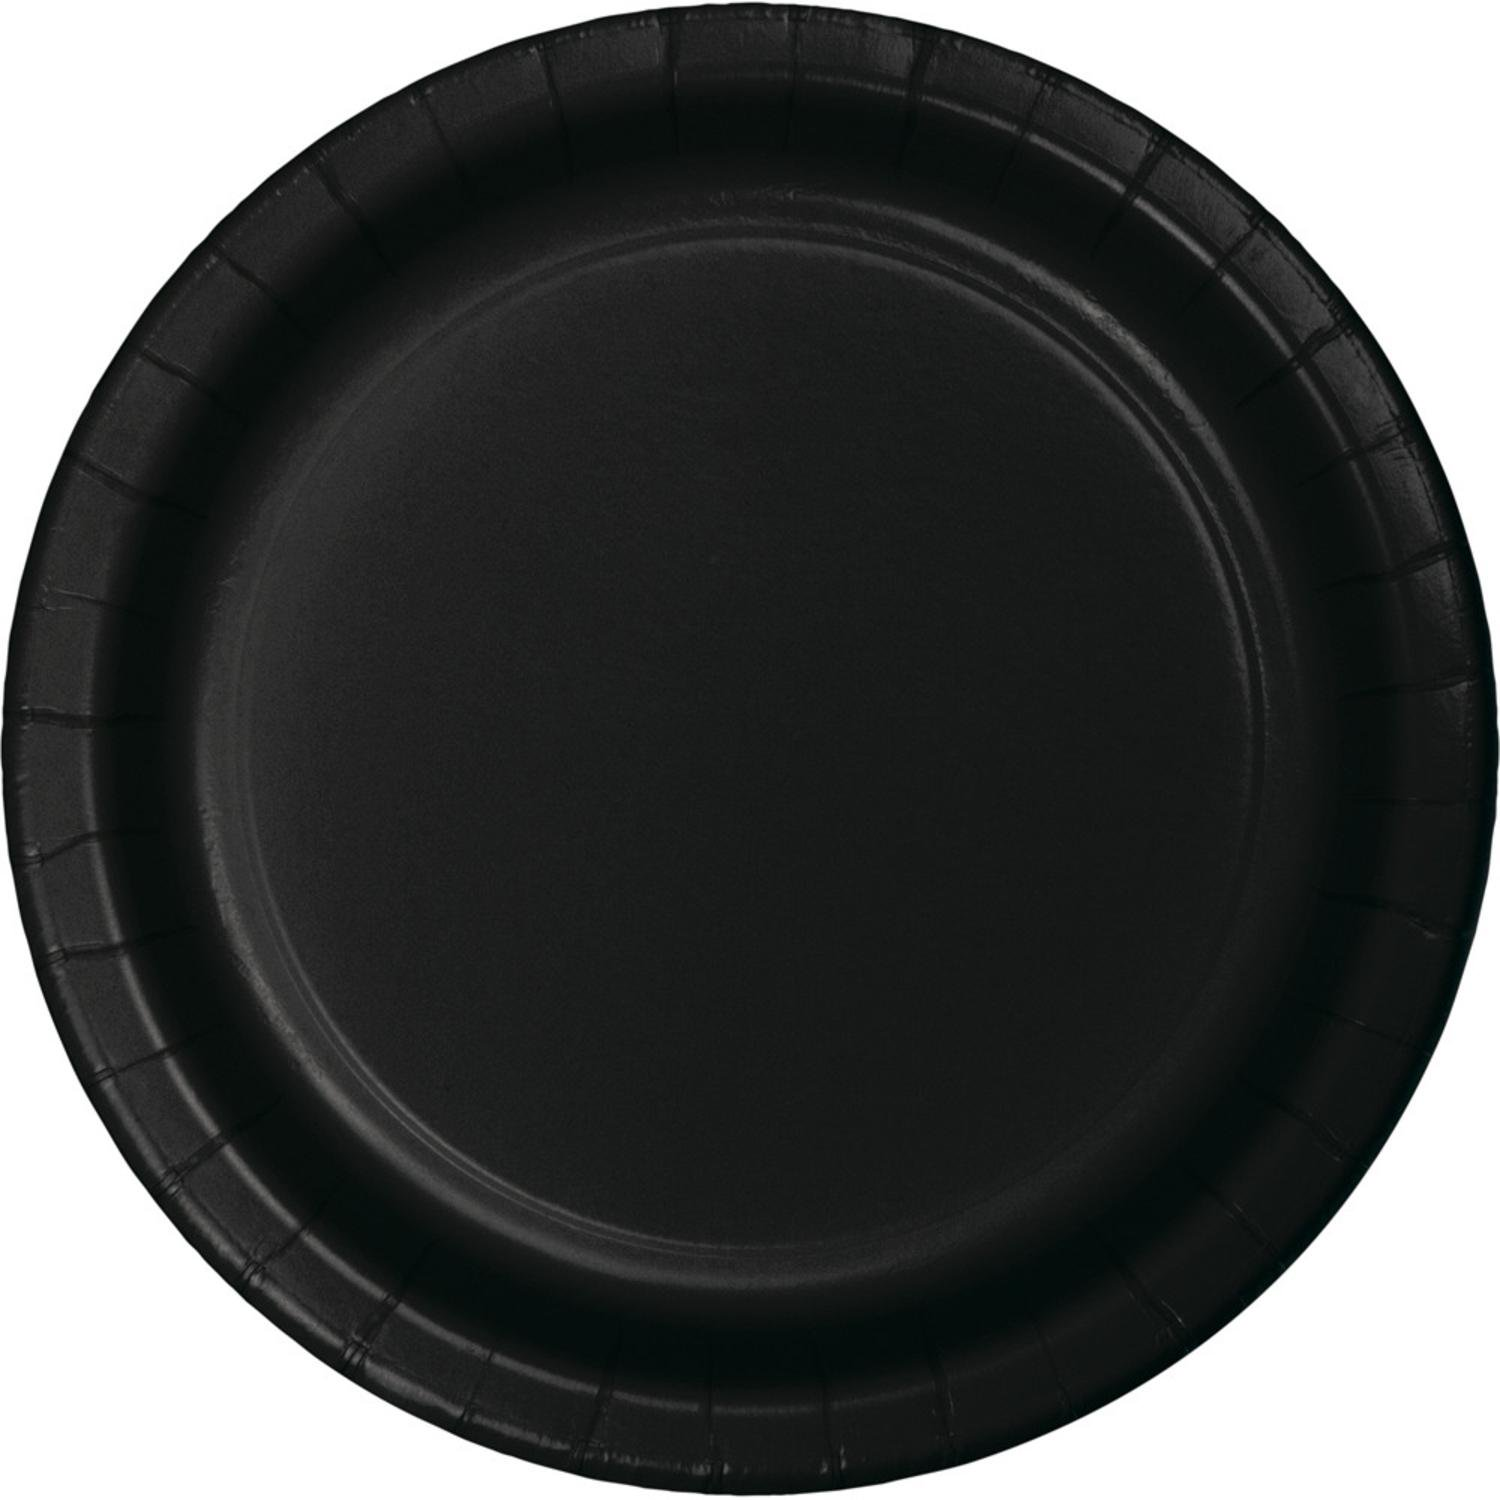 Club Pack of 192 Jet Black Disposable Paper Party Dinner Plates 9   sc 1 st  Walmart.com & Club Pack of 192 Jet Black Disposable Paper Party Dinner Plates 9 ...